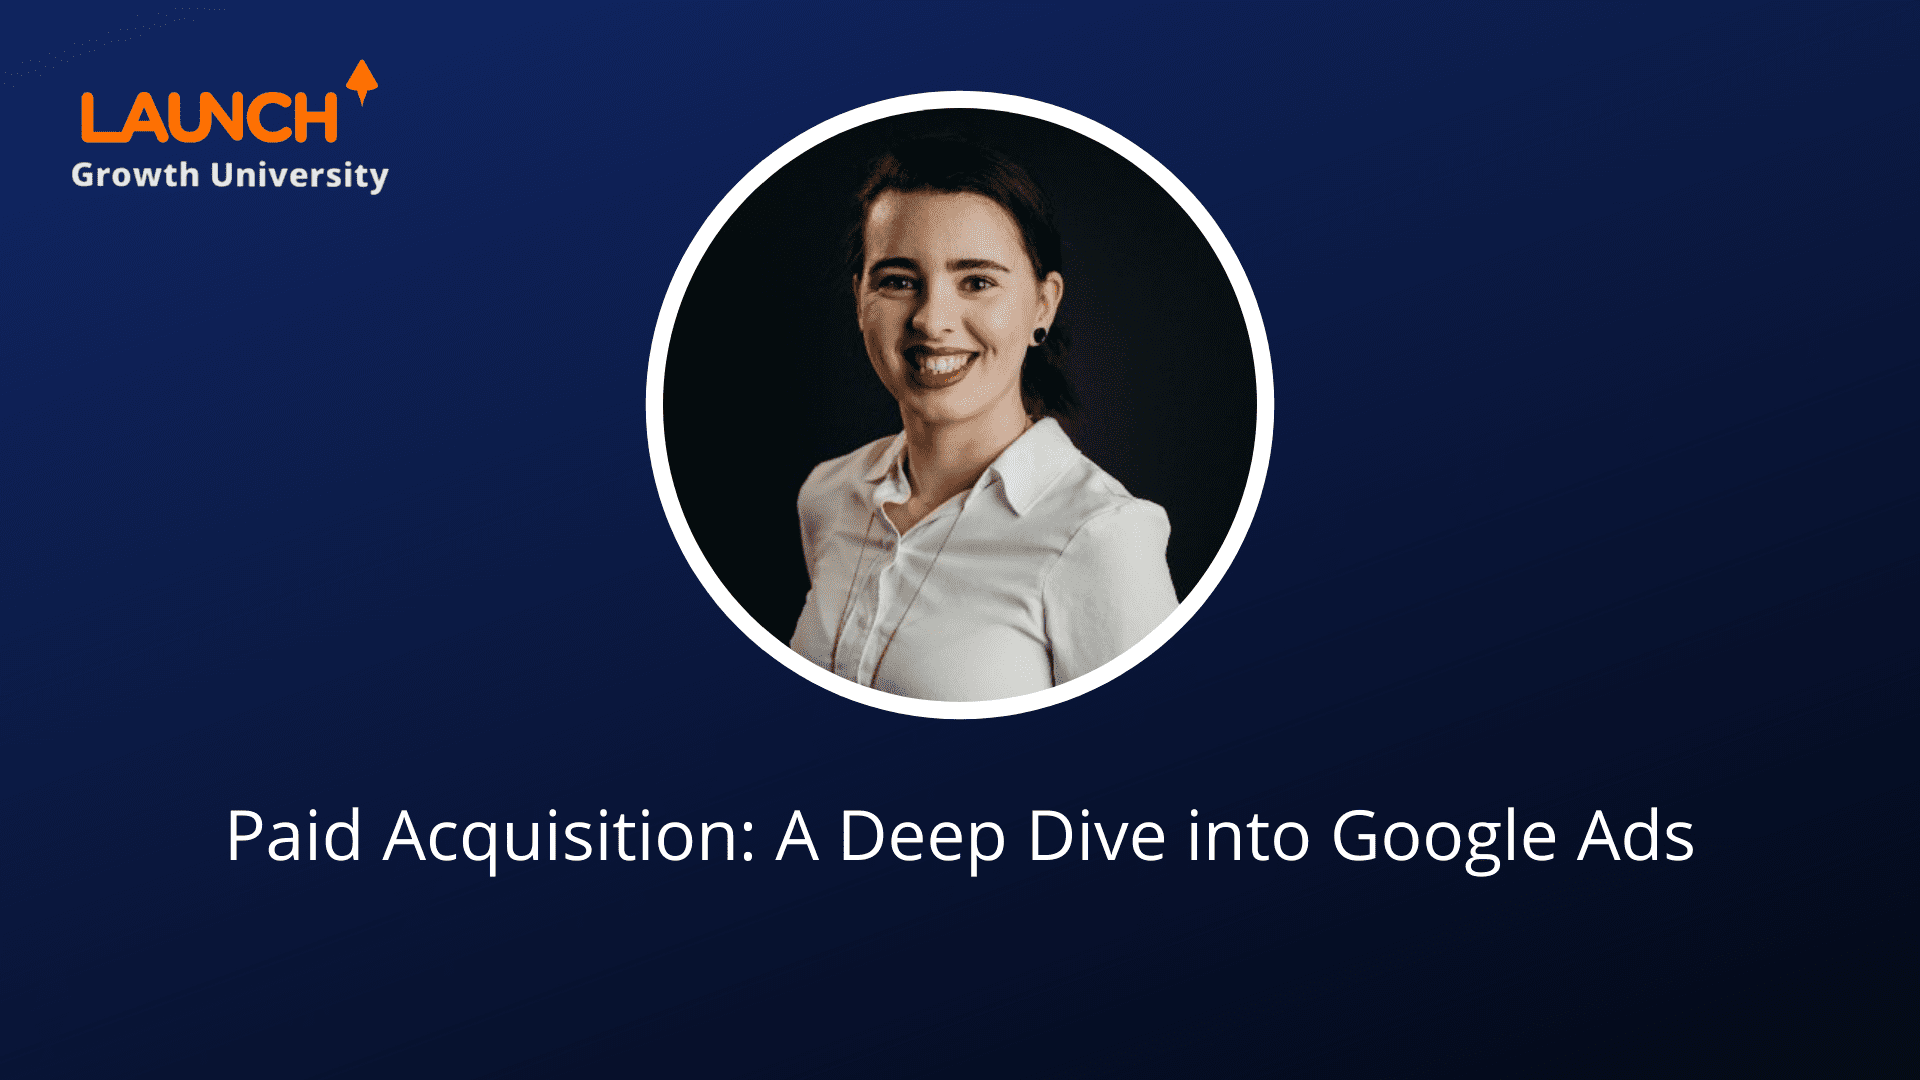 Paid Acquisition: A Deep Dive into Google Advertising